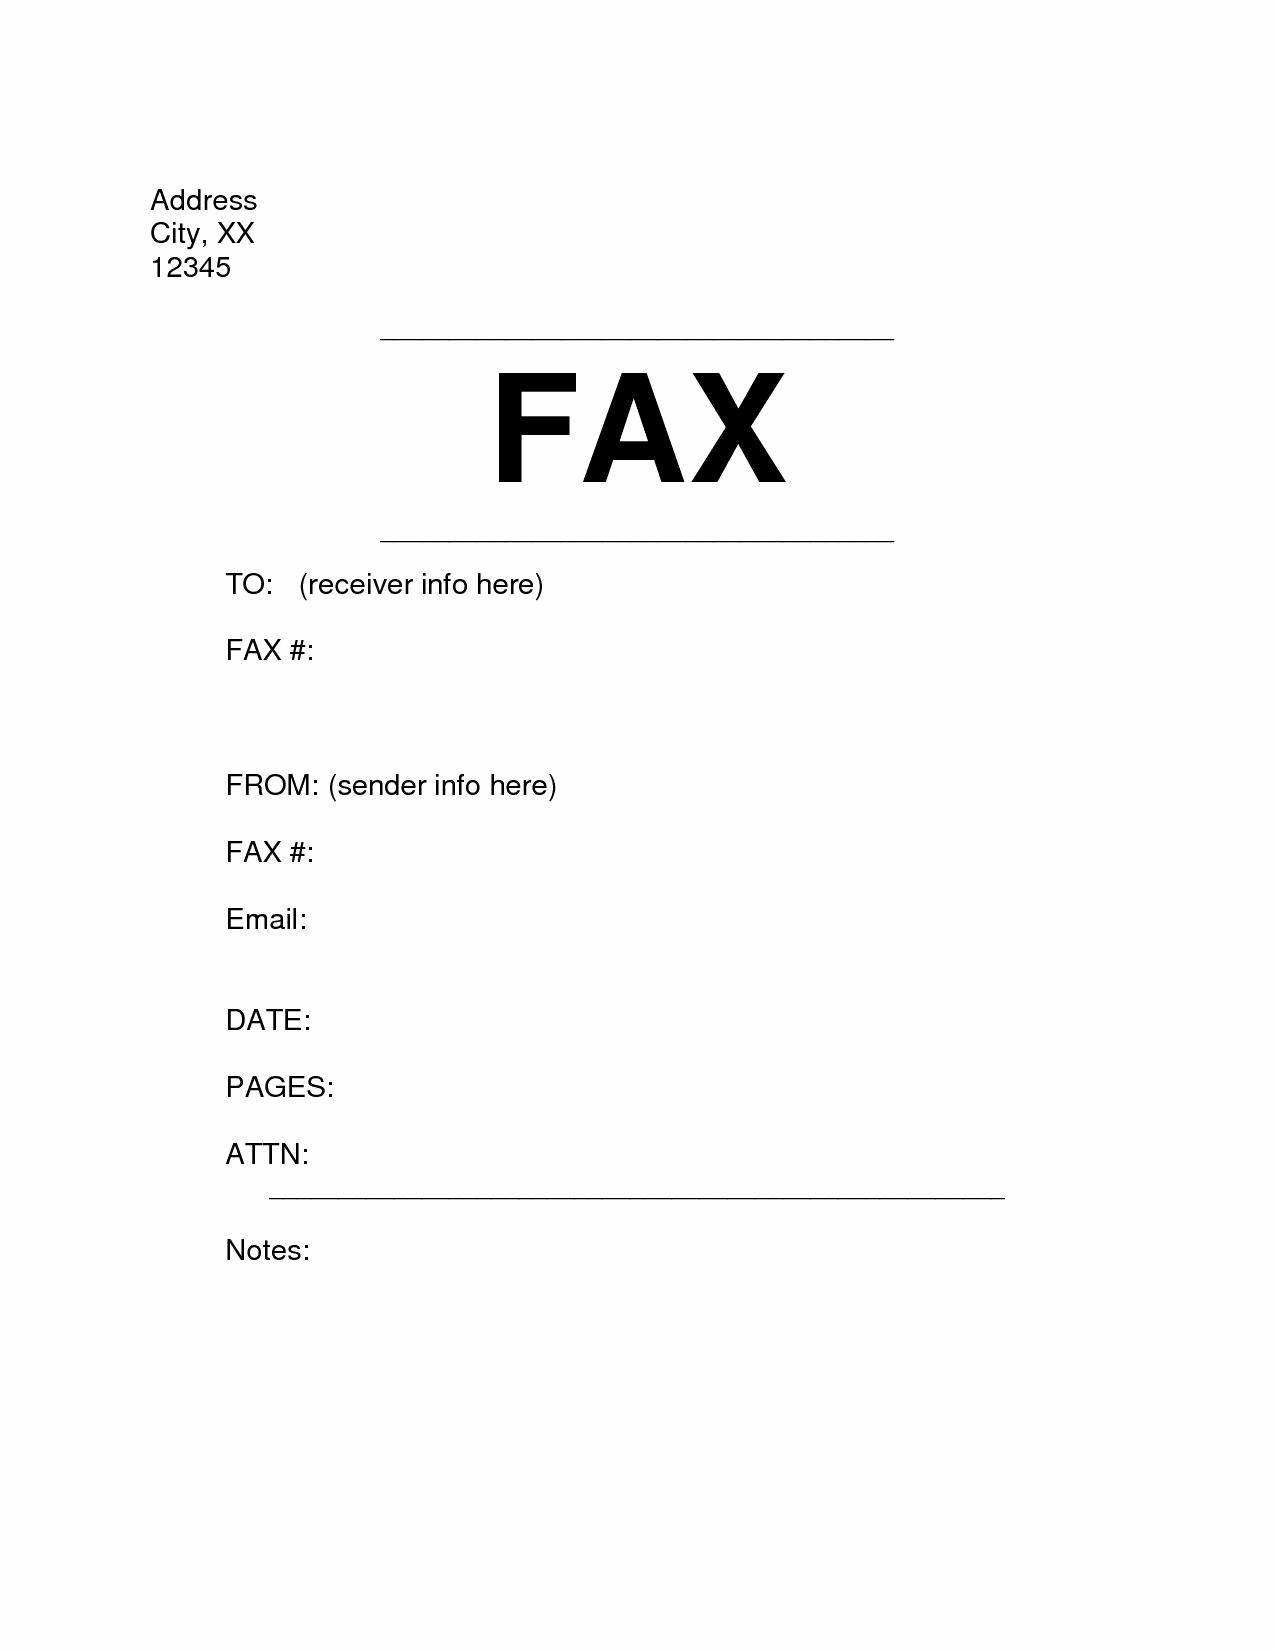 Cover Letter for A Fax Best Of Fax Cover Letter Example Resume Fax Cover Letter Example